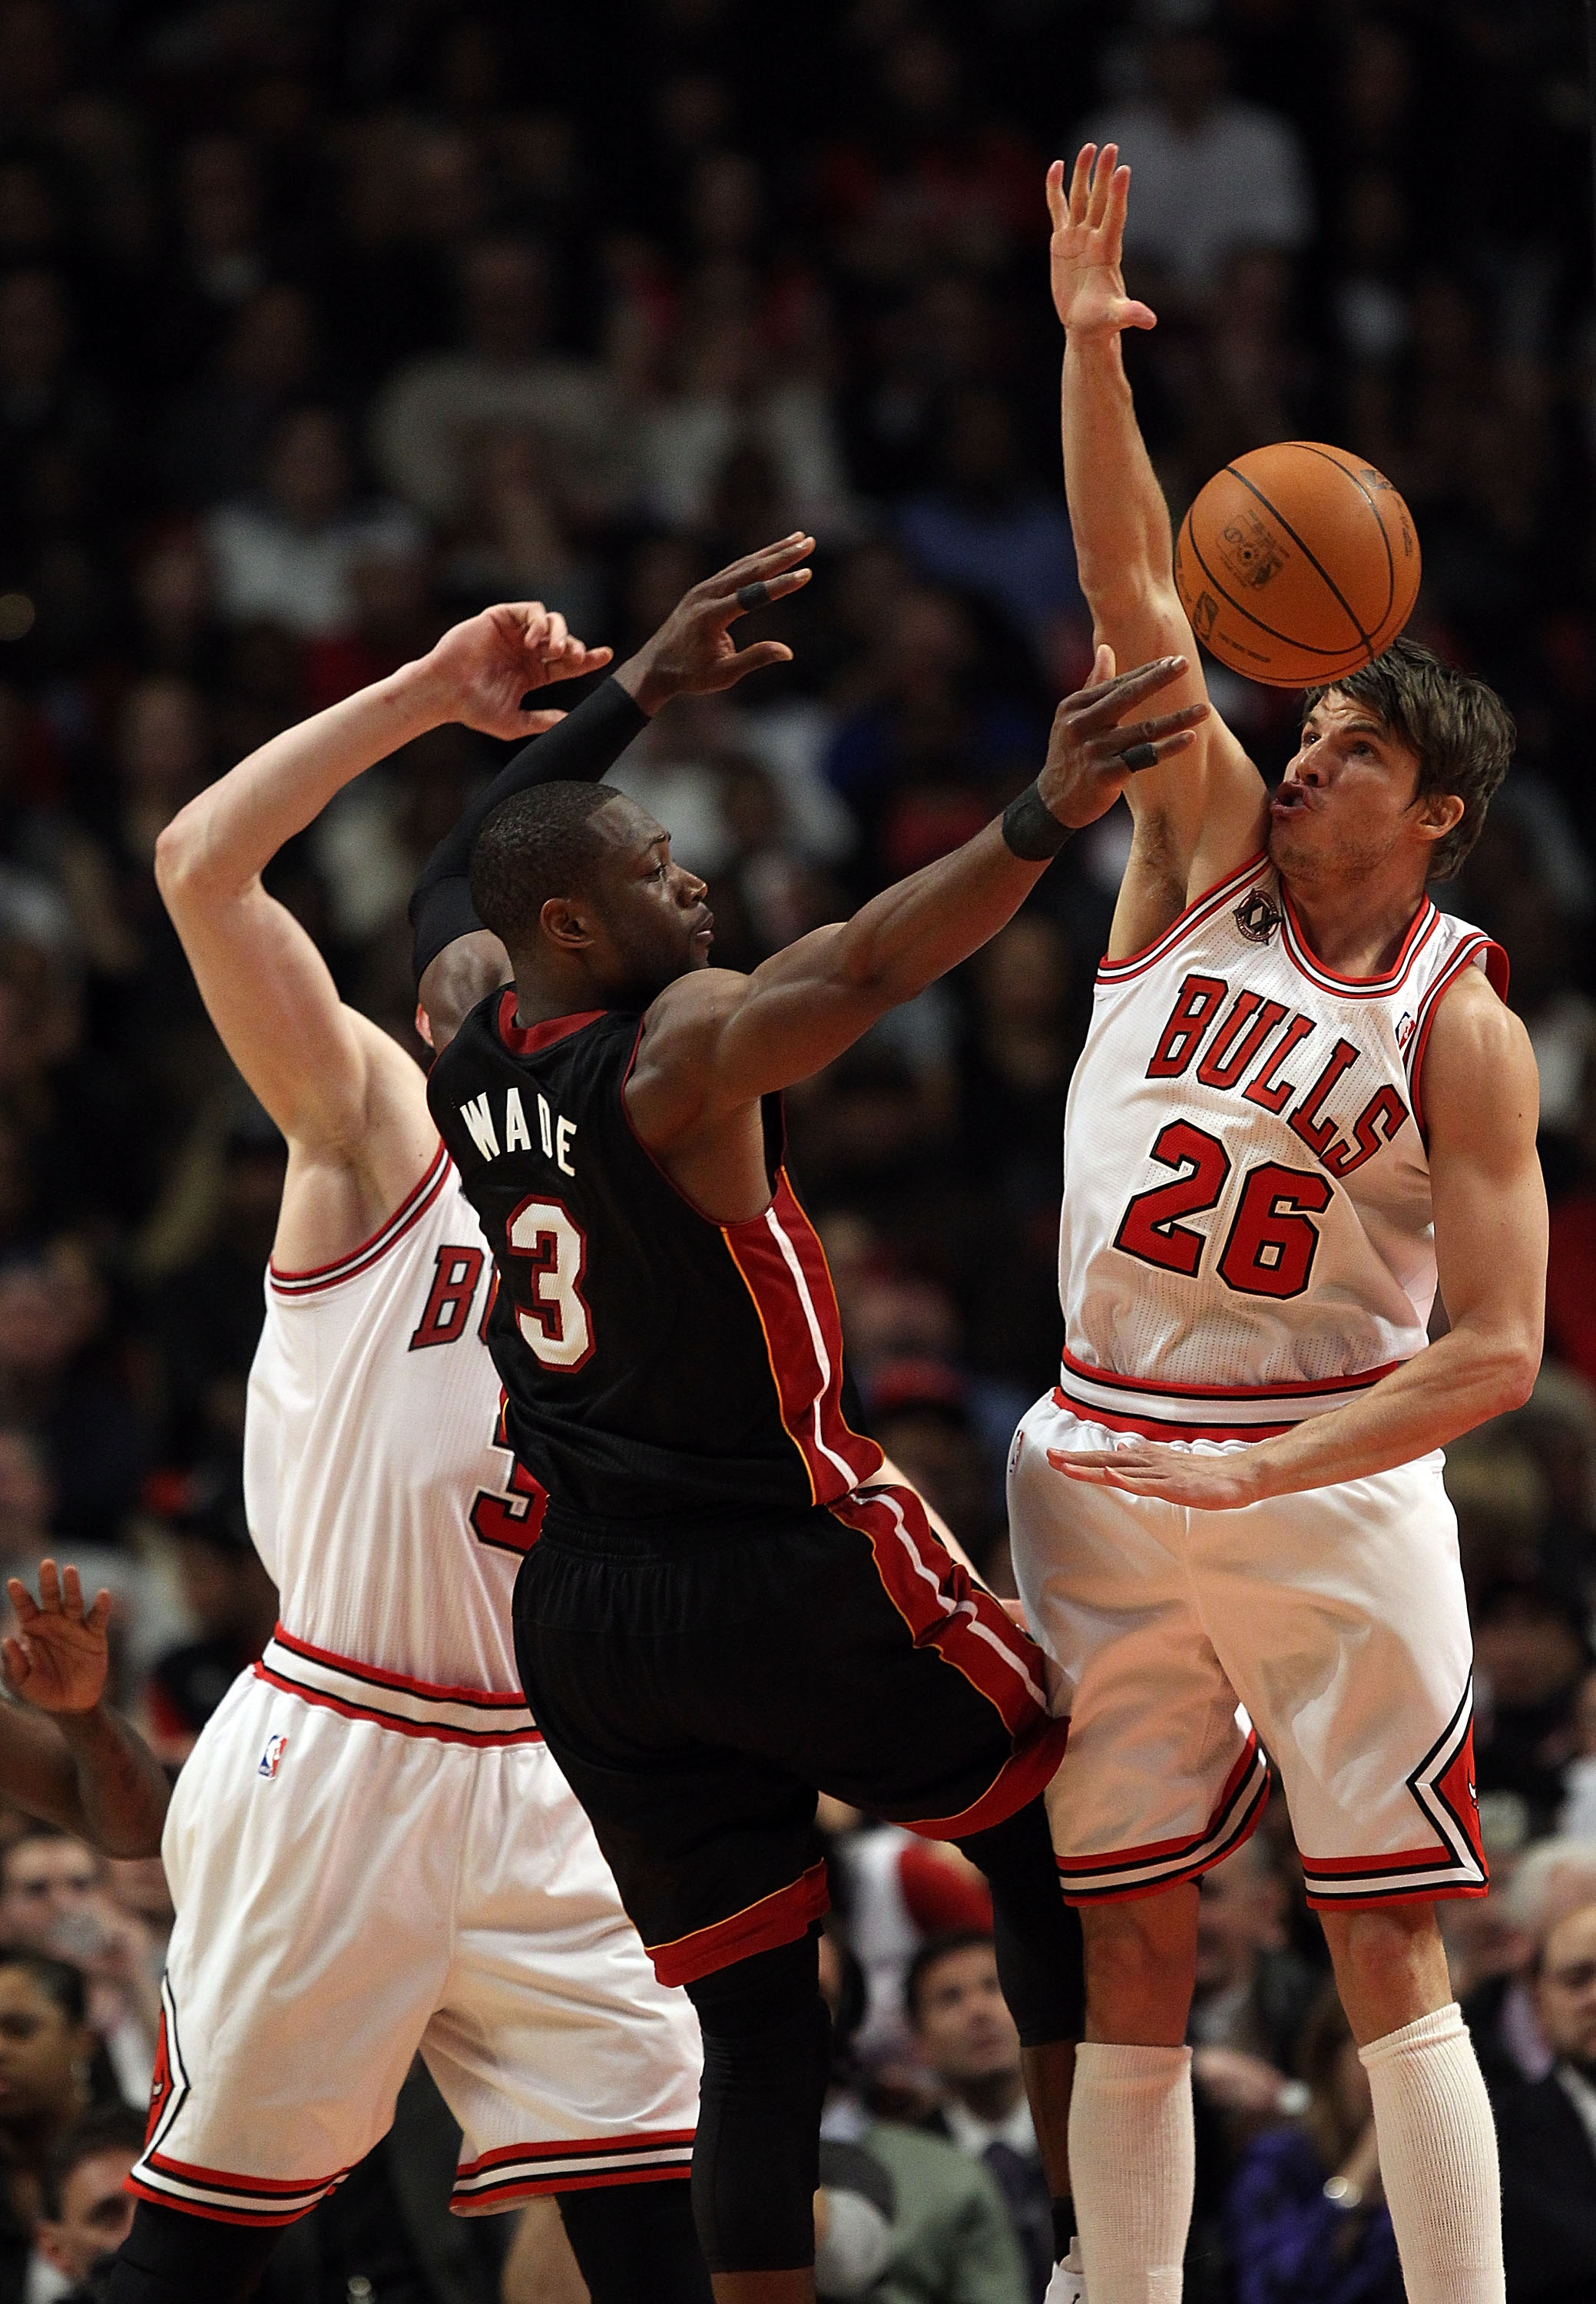 CHICAGO, IL - FEBRUARY 24: Dwyane Wade #3 of the Miami Heat passes the ball under pressure from Omer Asik #3 and Kyle Korver #26 of the Chicago Bulls at the United Center on February 24, 2011 in Chicago, Illinois. The Bulls defeated the Heat 93-89. NOTE T